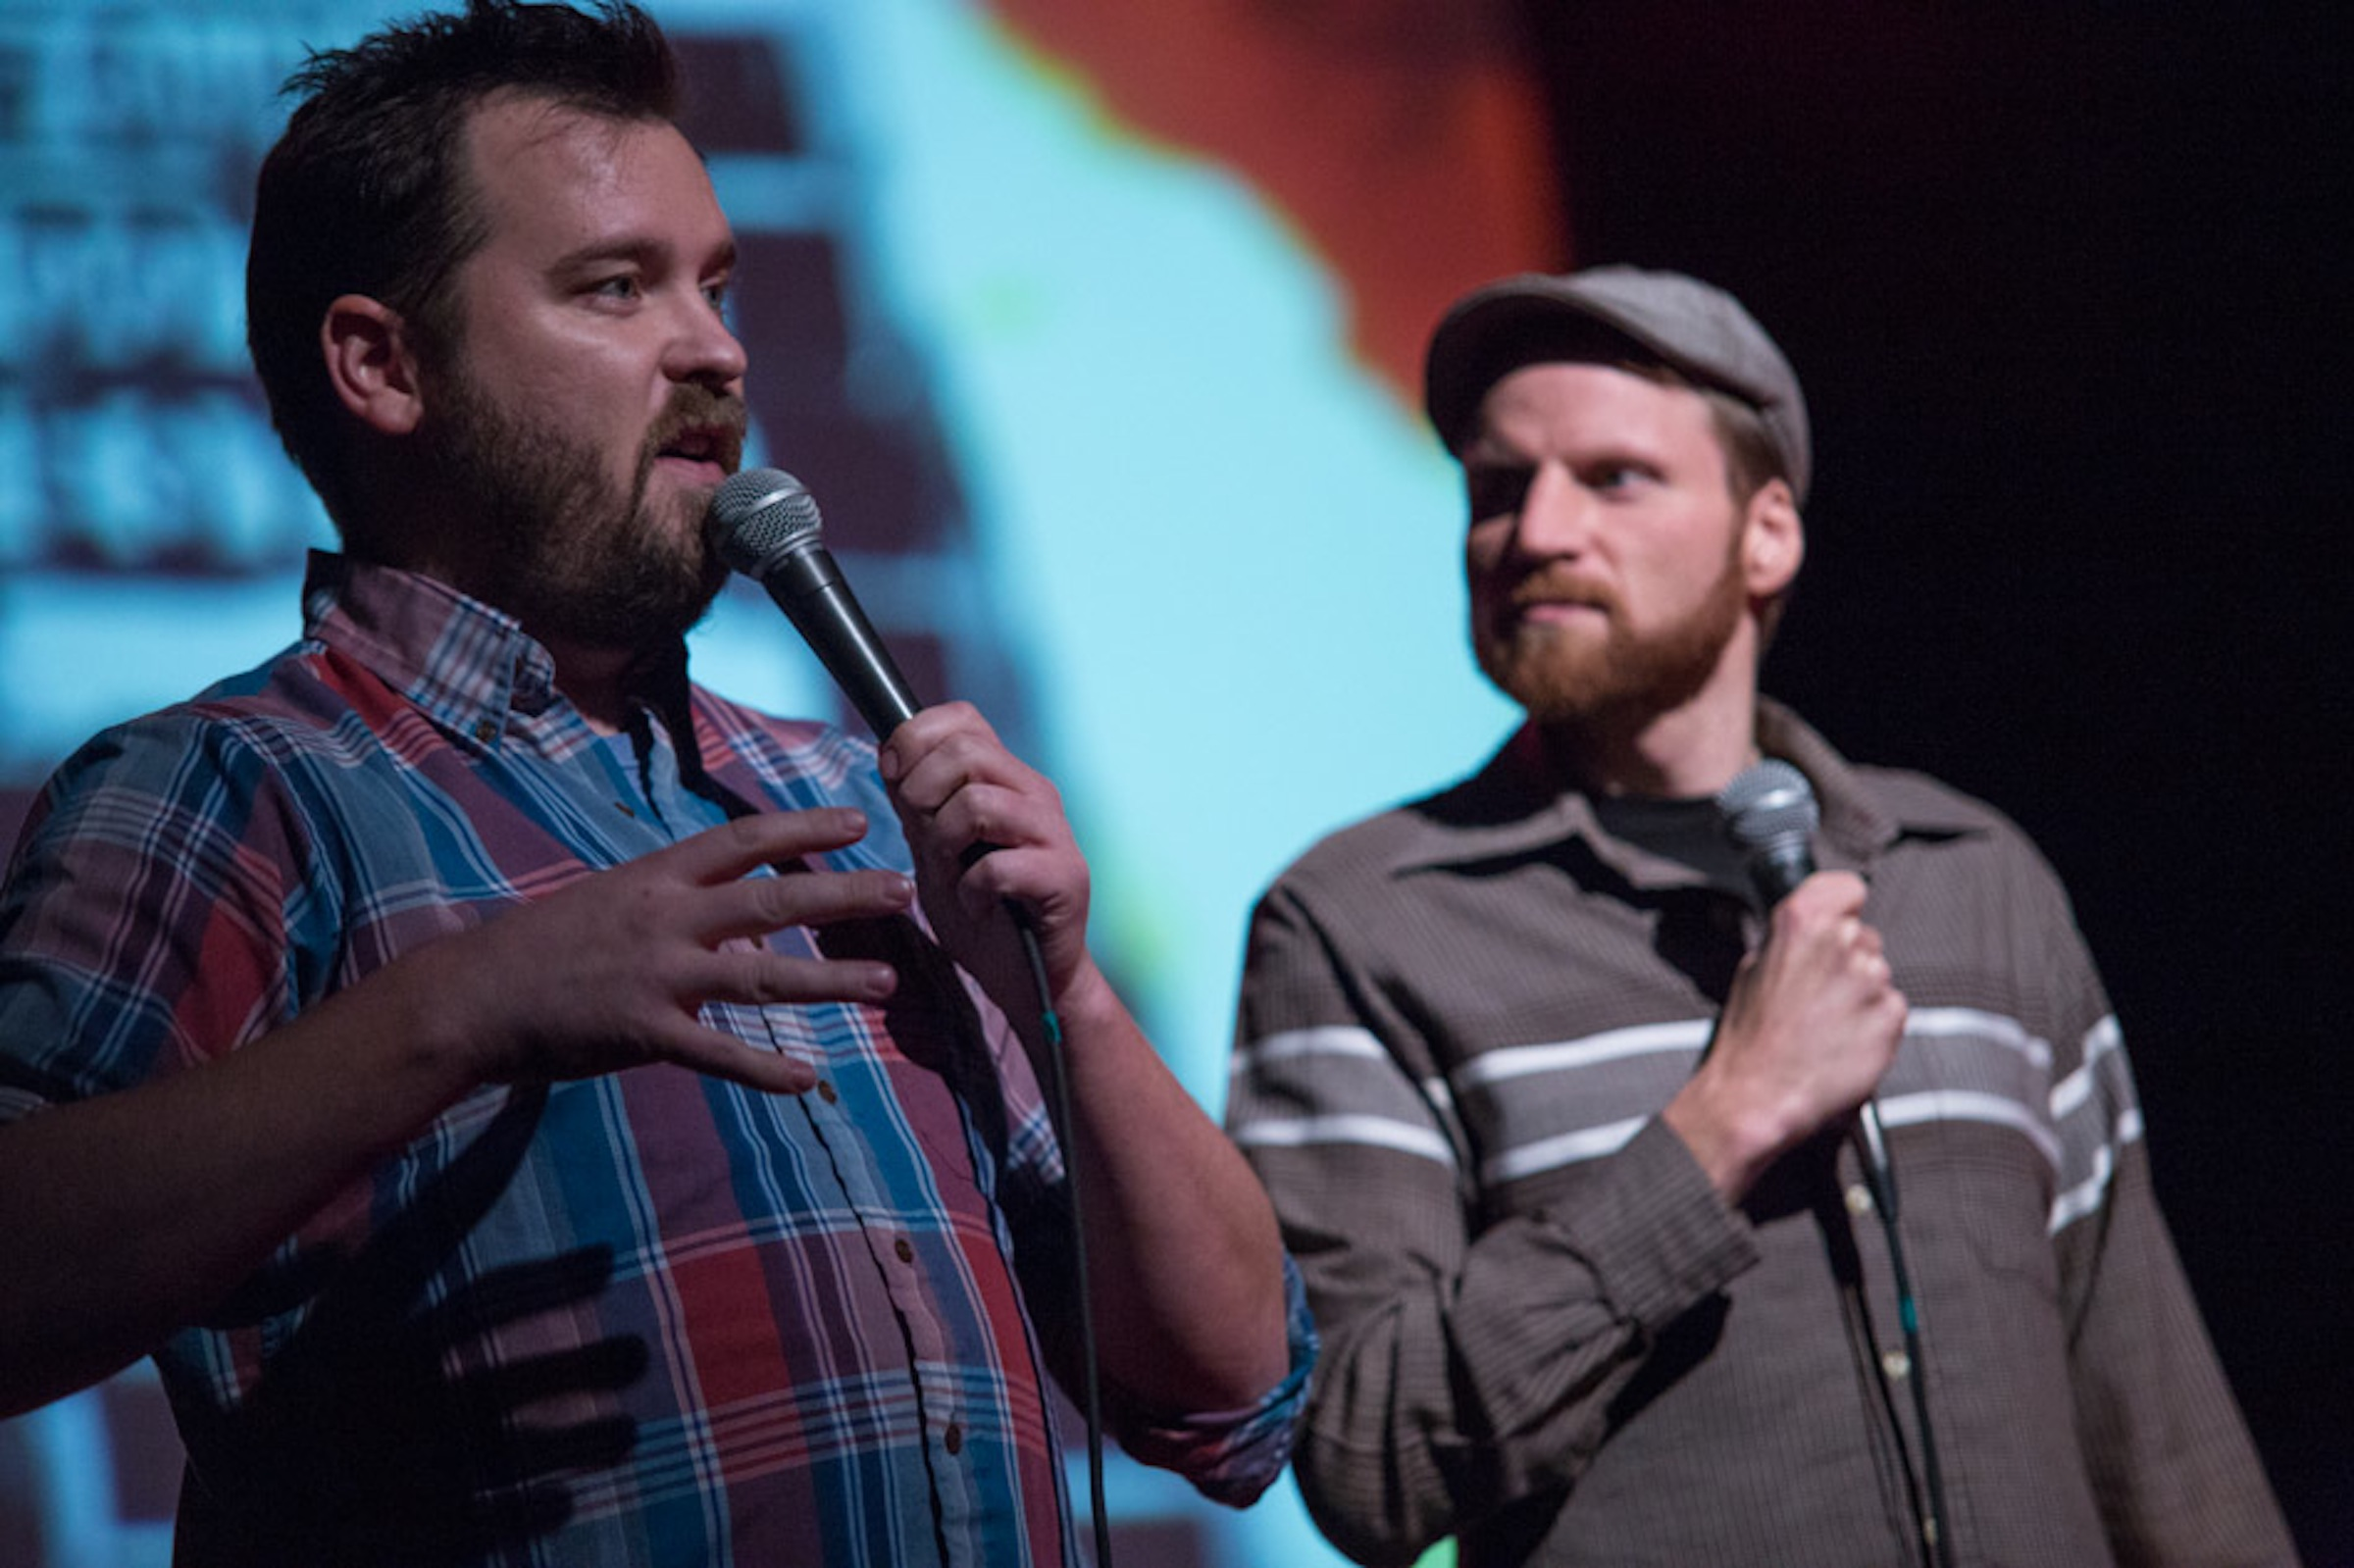 Joe Pickett and Nick Prueher, creators of the Found Footage Festival on stage in Milwaukee.